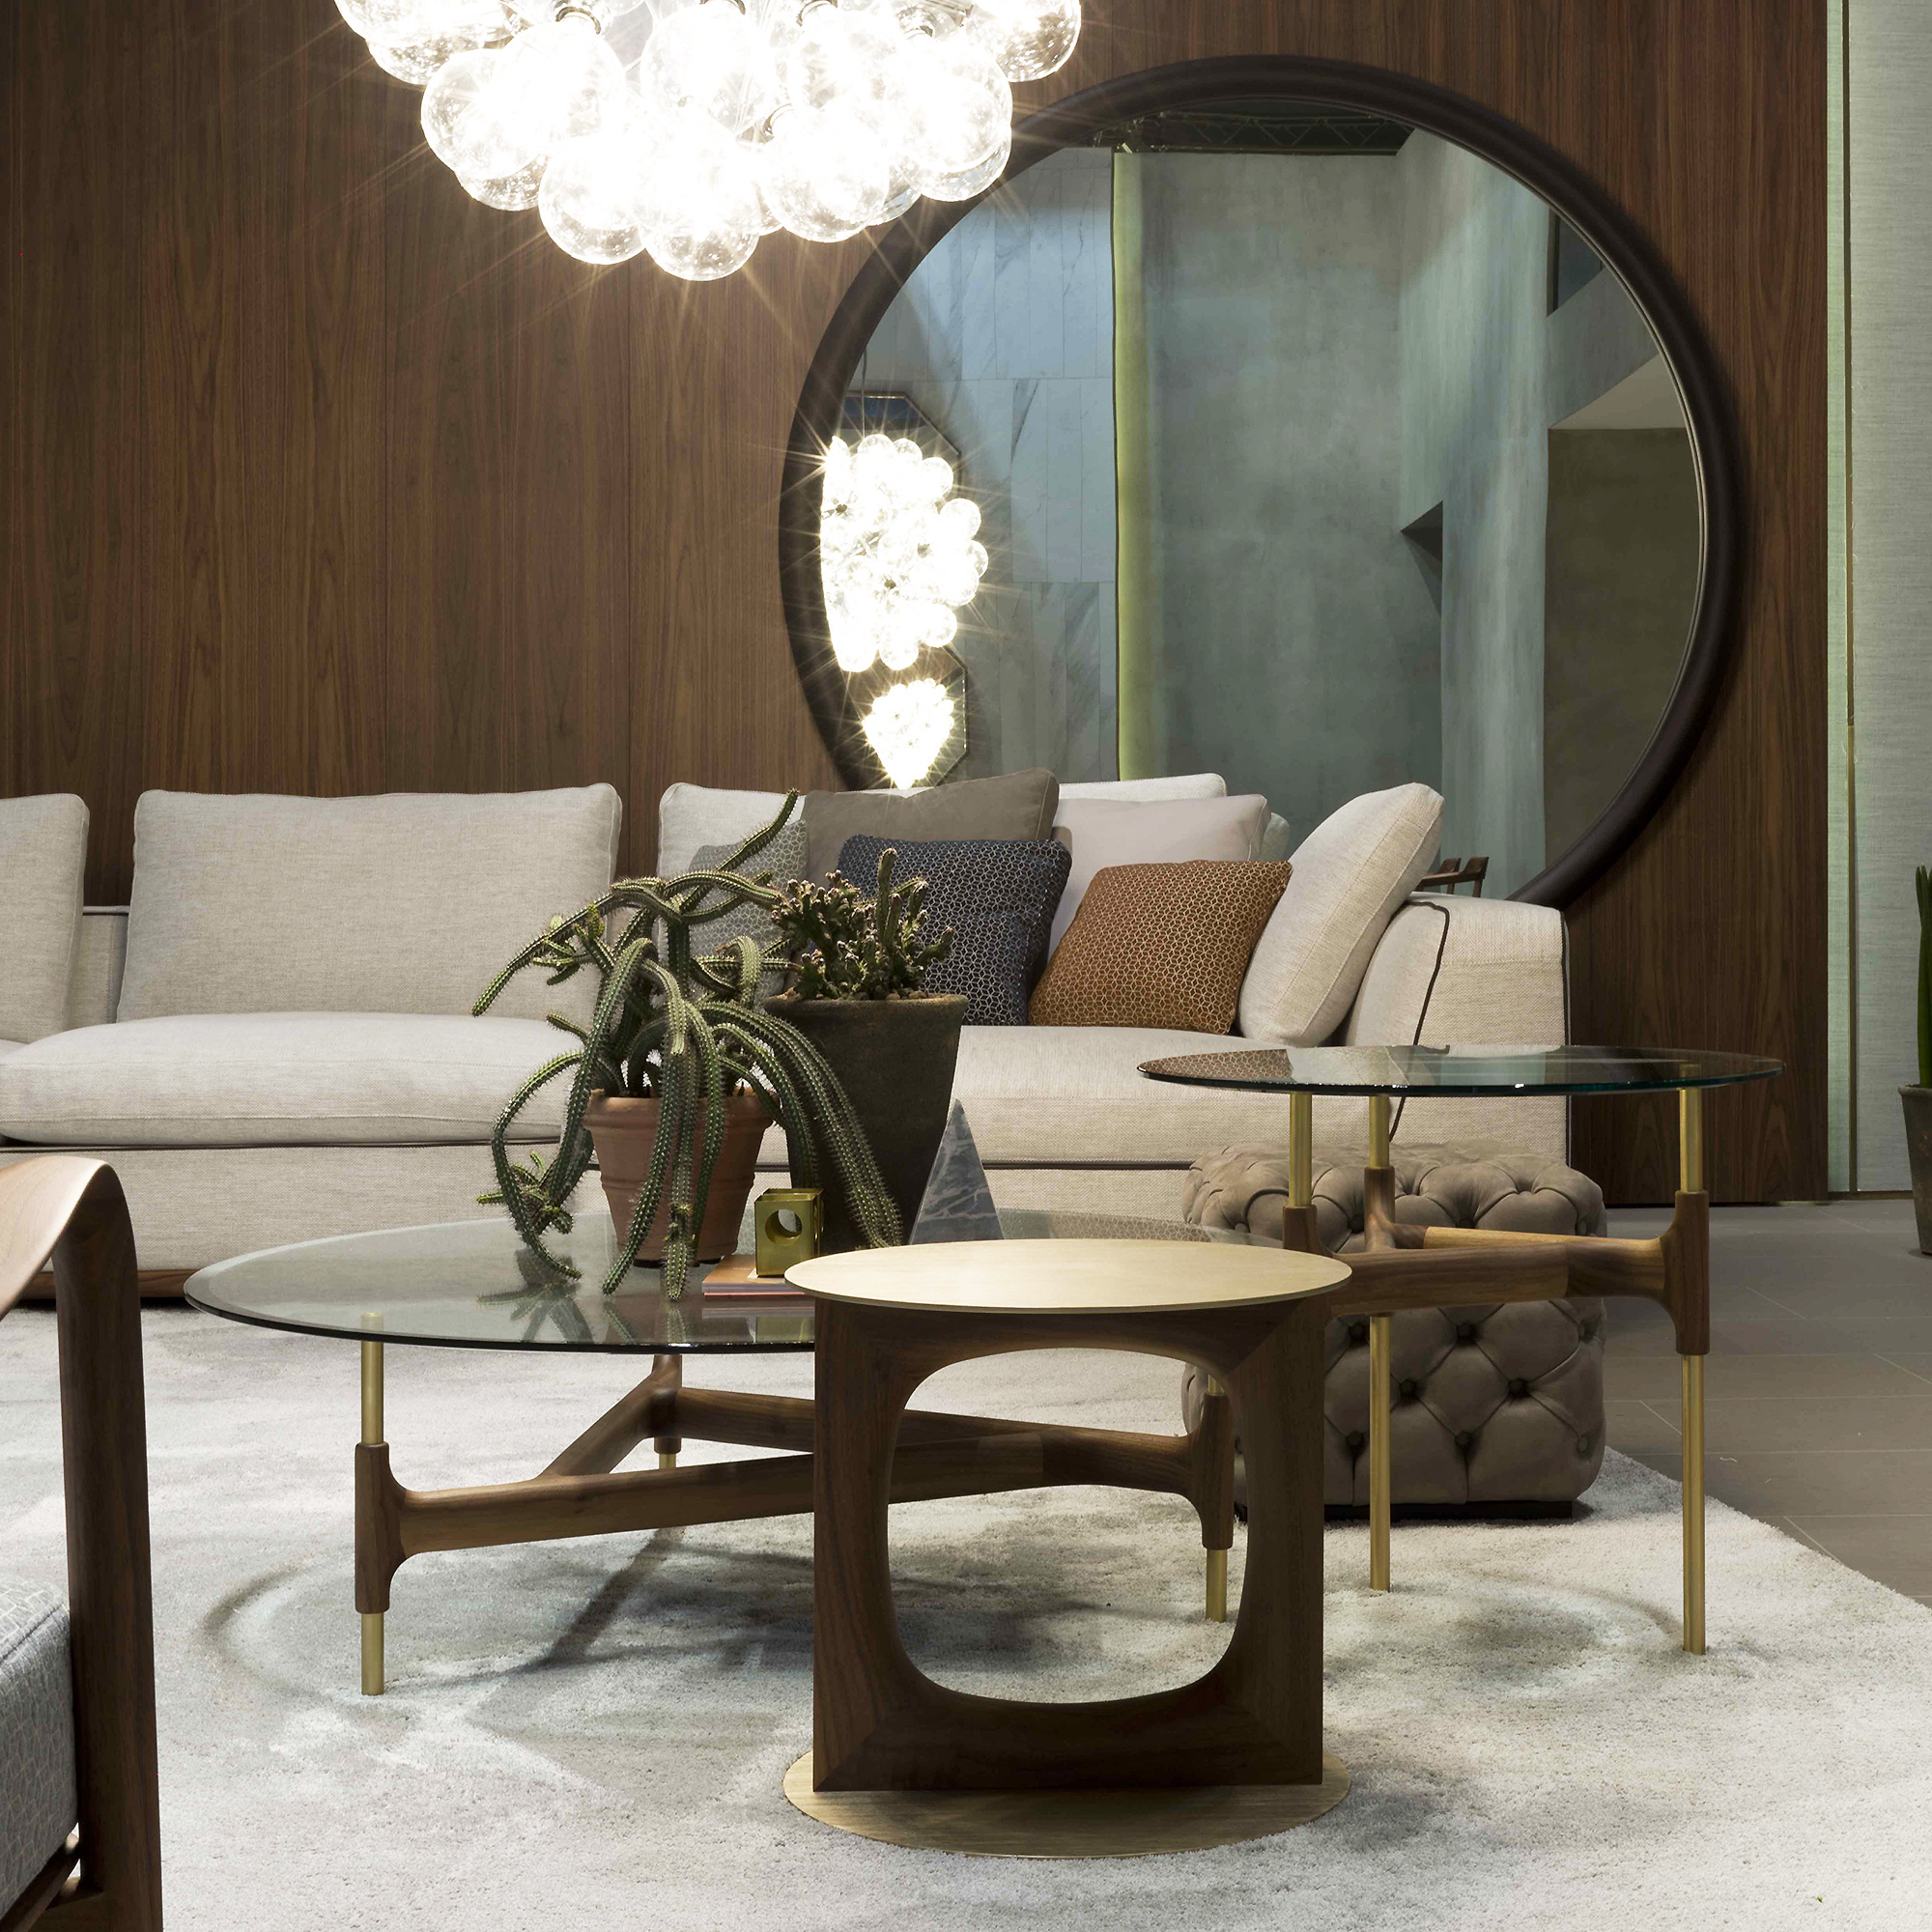 High end Italian Joint Coffee Table Italian Designer & Luxury